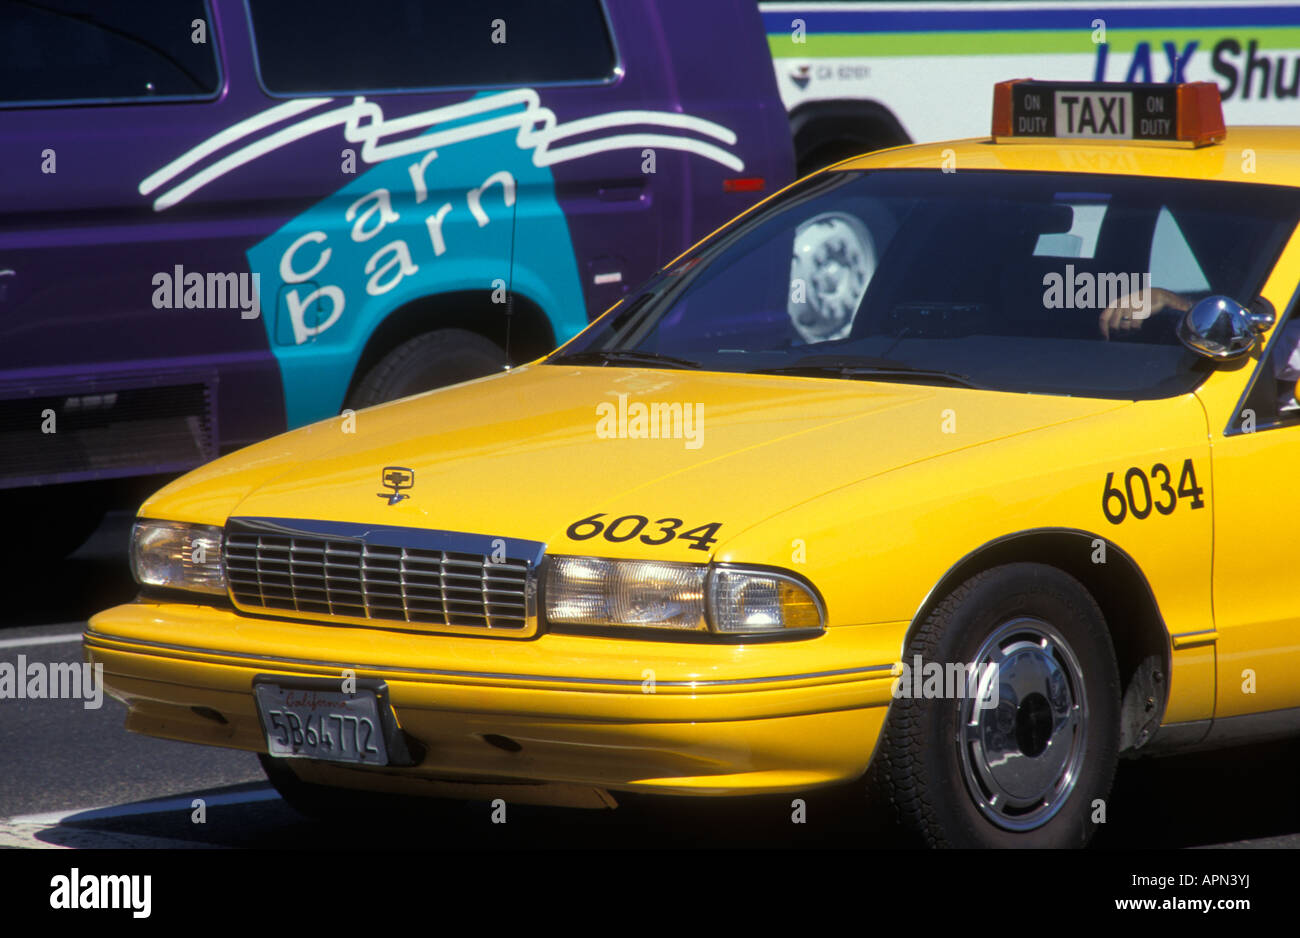 taxi-at-the-airport-in-los-angeles-calif